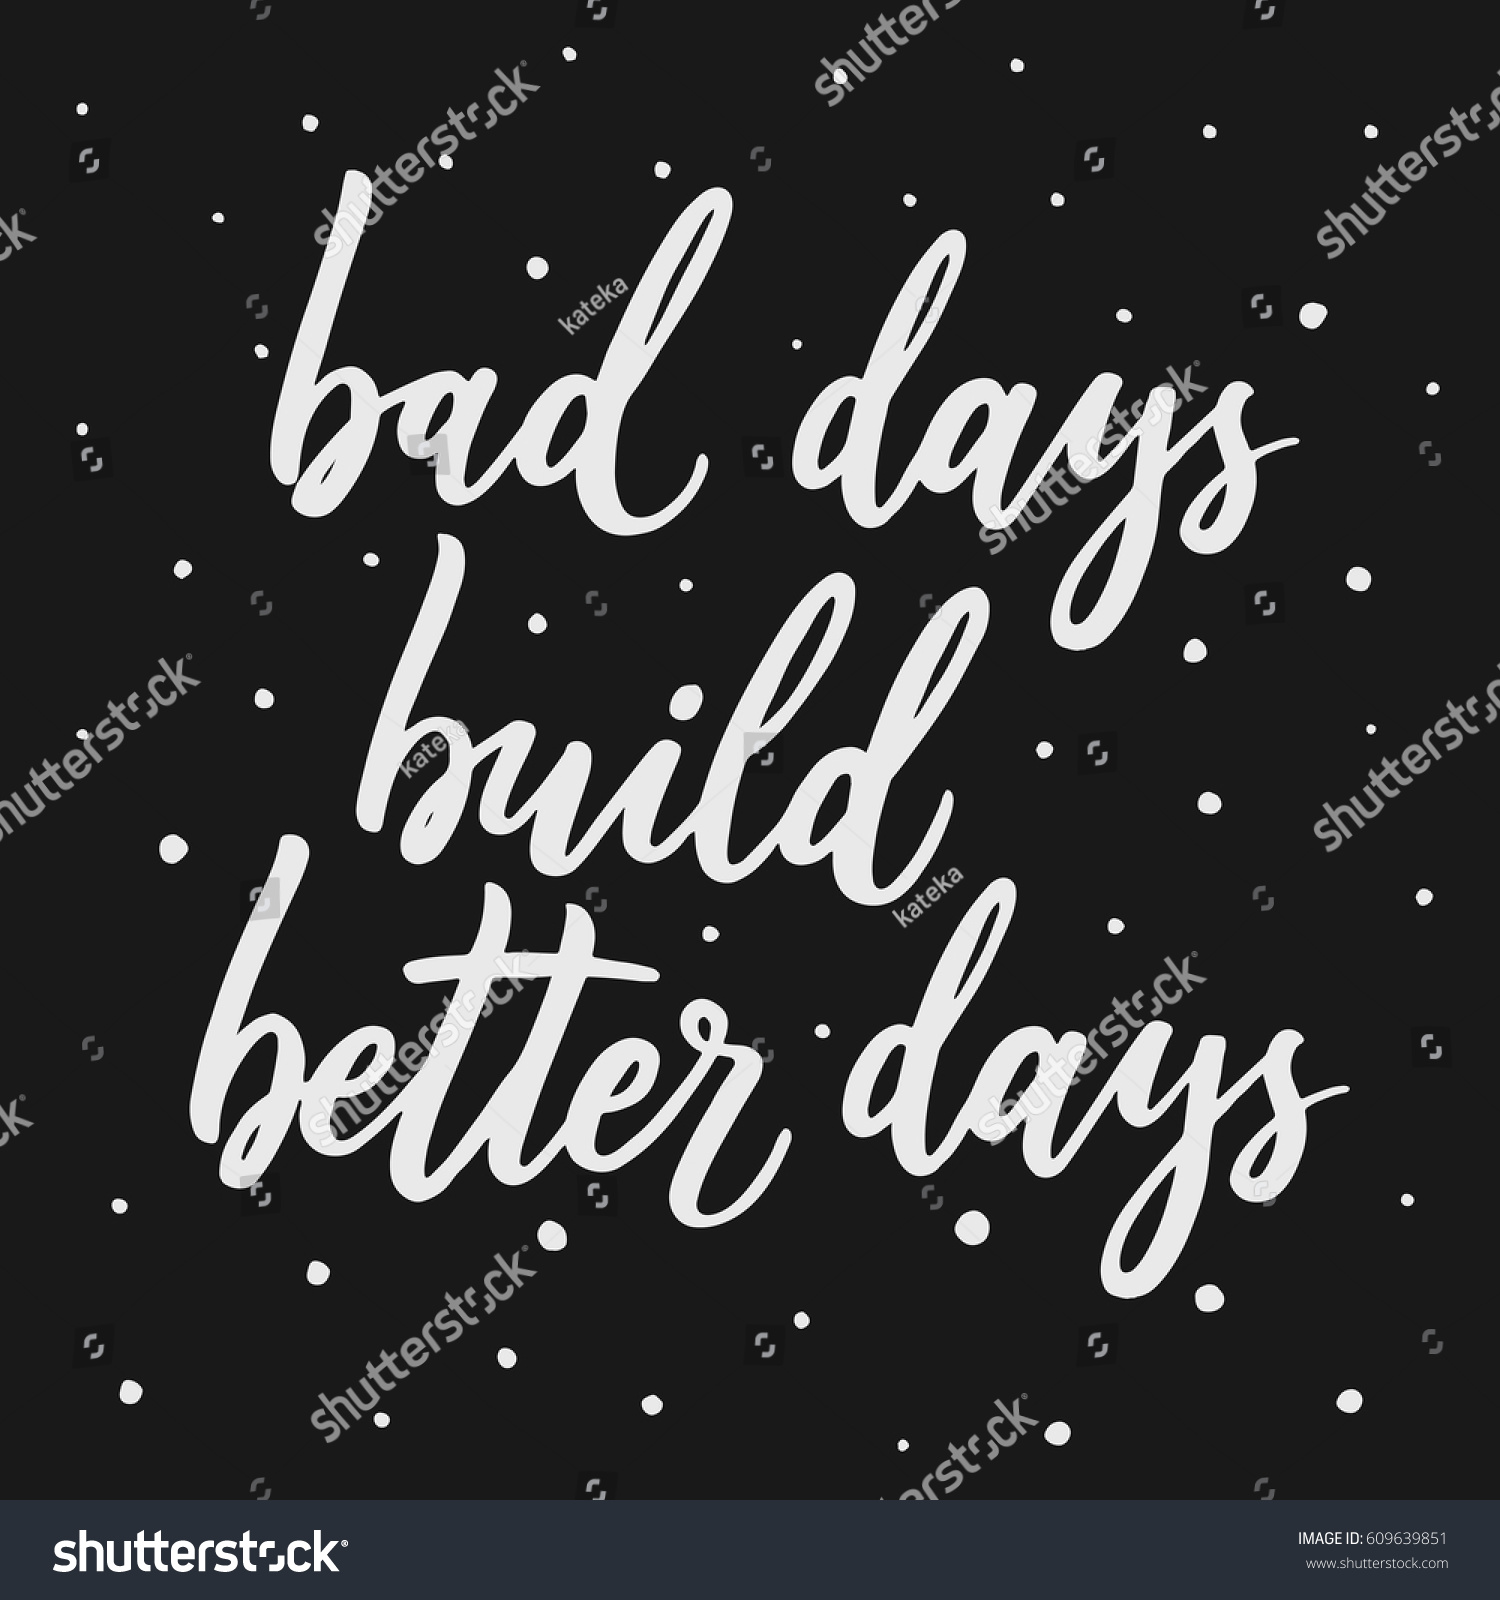 Better Days Quotes New Bad Days Build Better Days Hand Stock Vector 609639851  Shutterstock